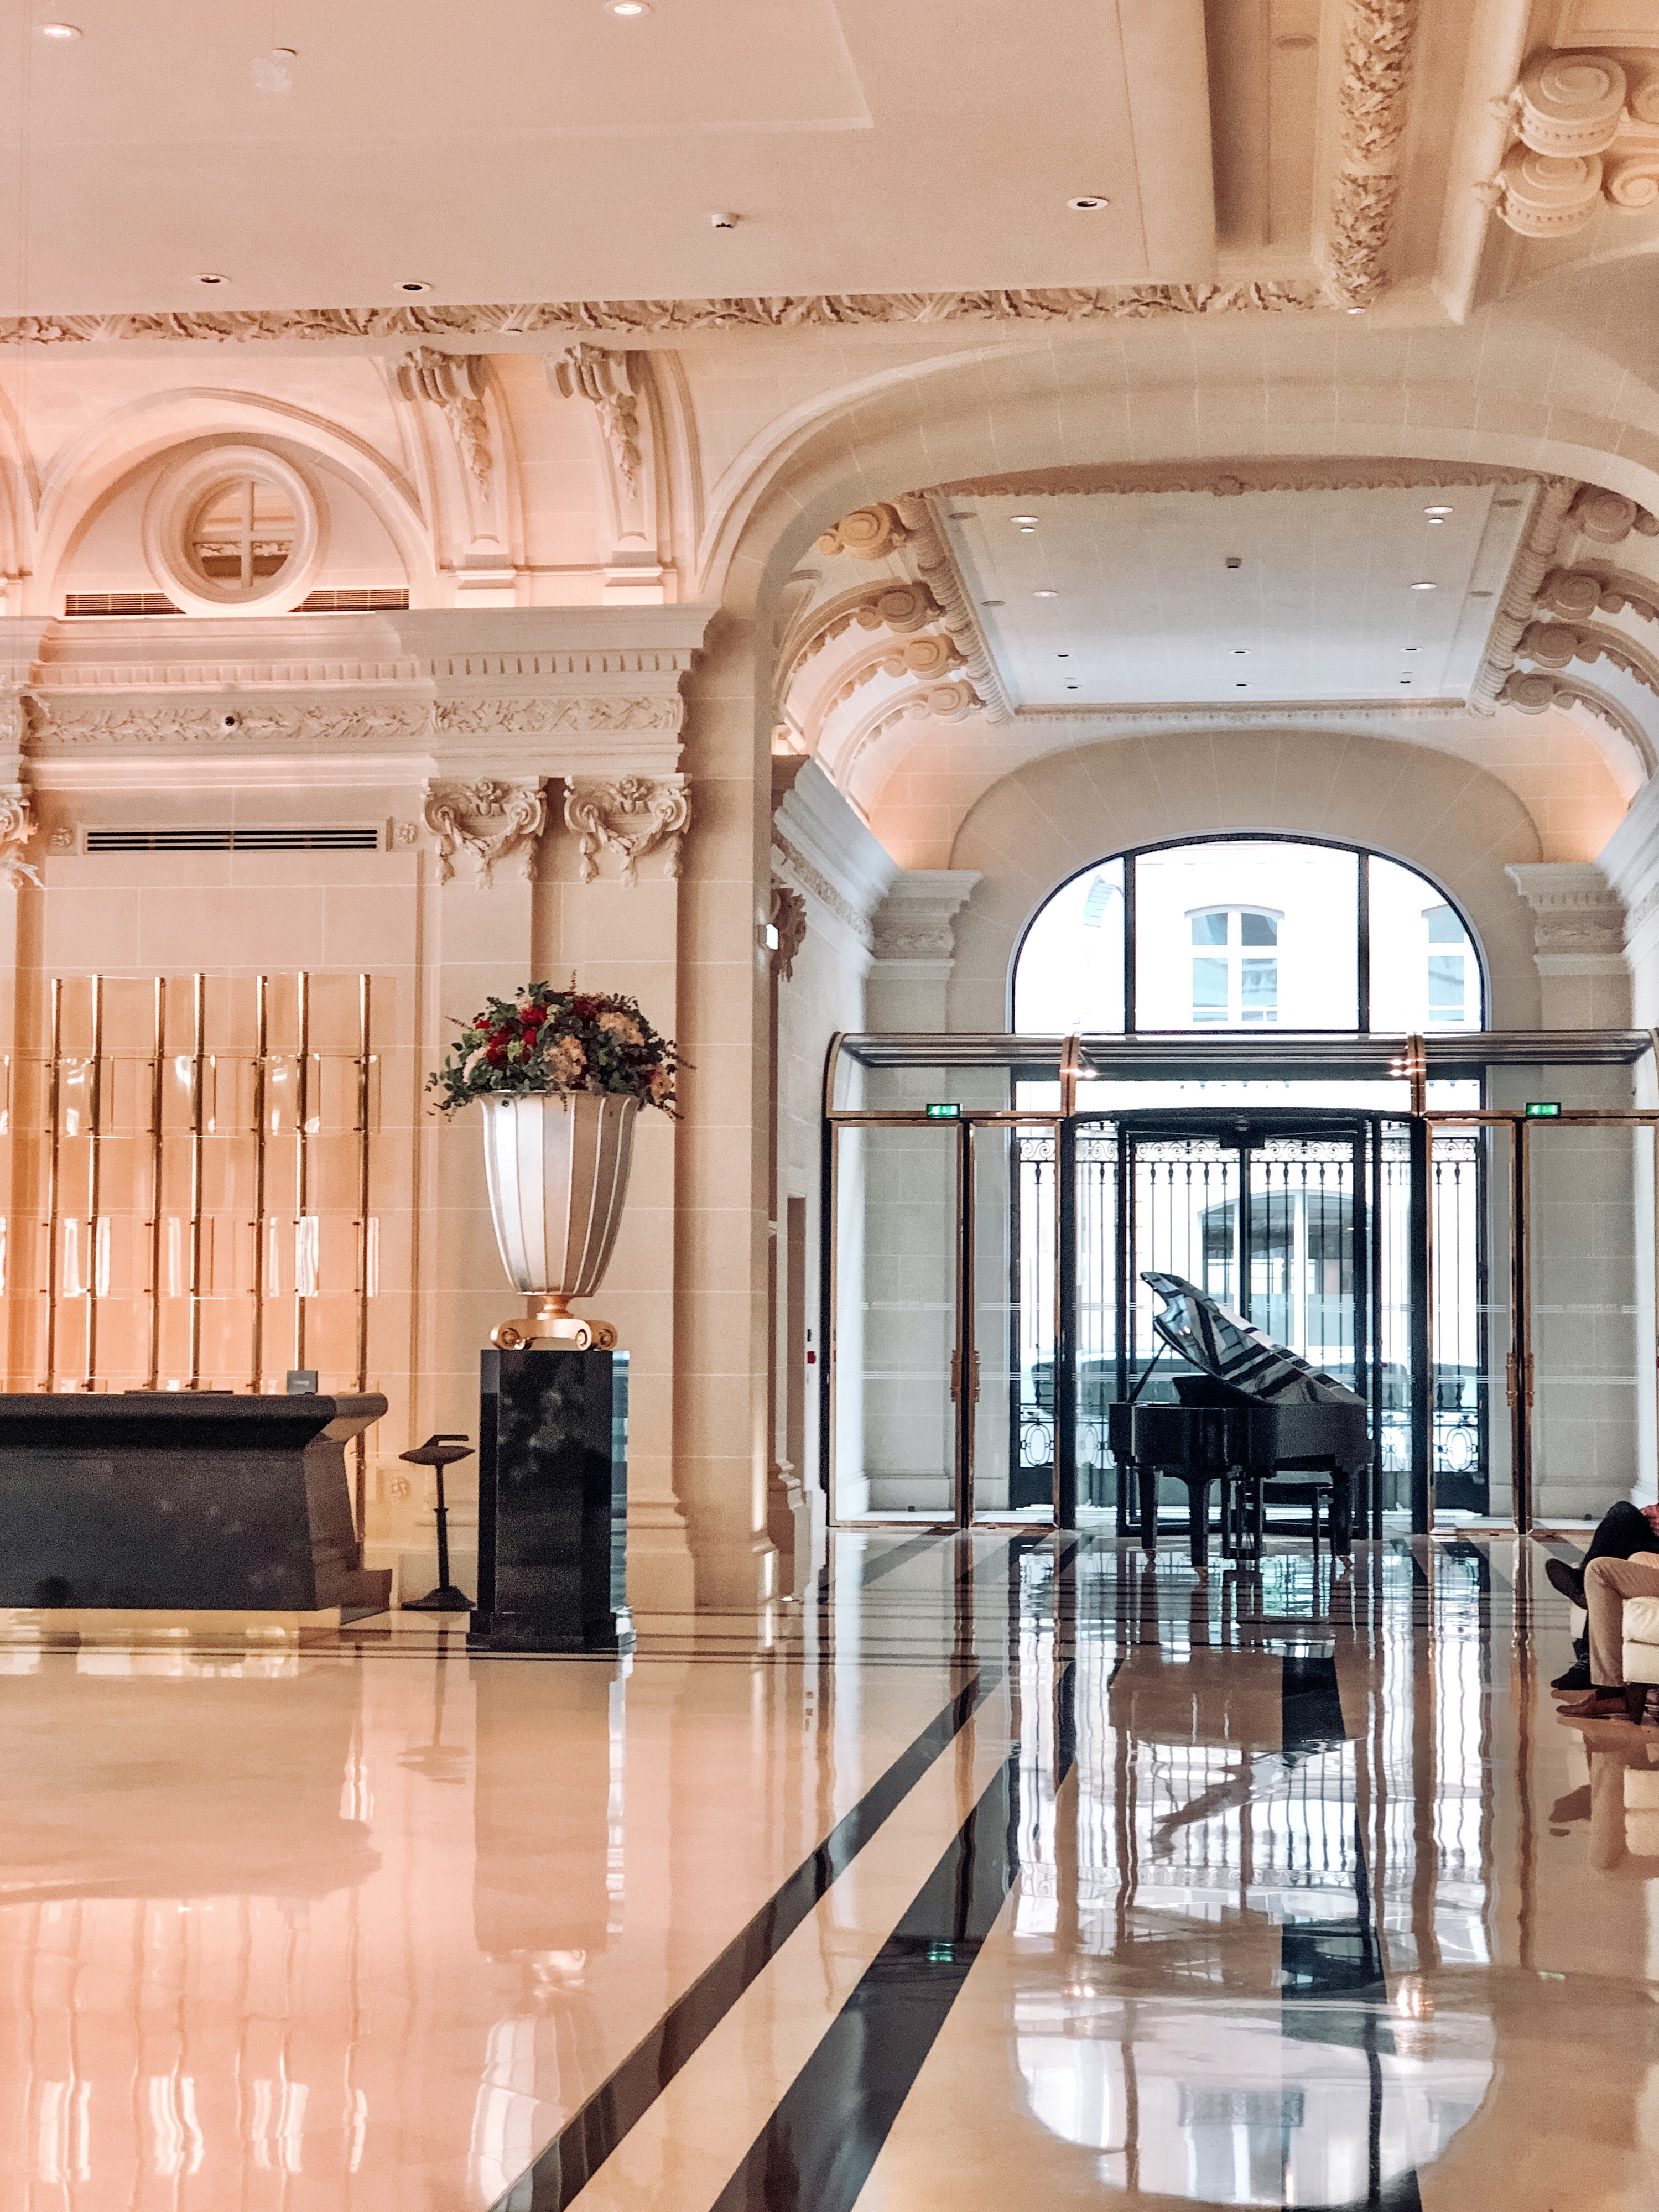 The Peninsula Paris, Best Hotel in Paris, Paris travel, Paris vacations, viaggiare a Paris, holiday in Paris, Impastastorie, Impastastorie Bistro, Hotels Paris,